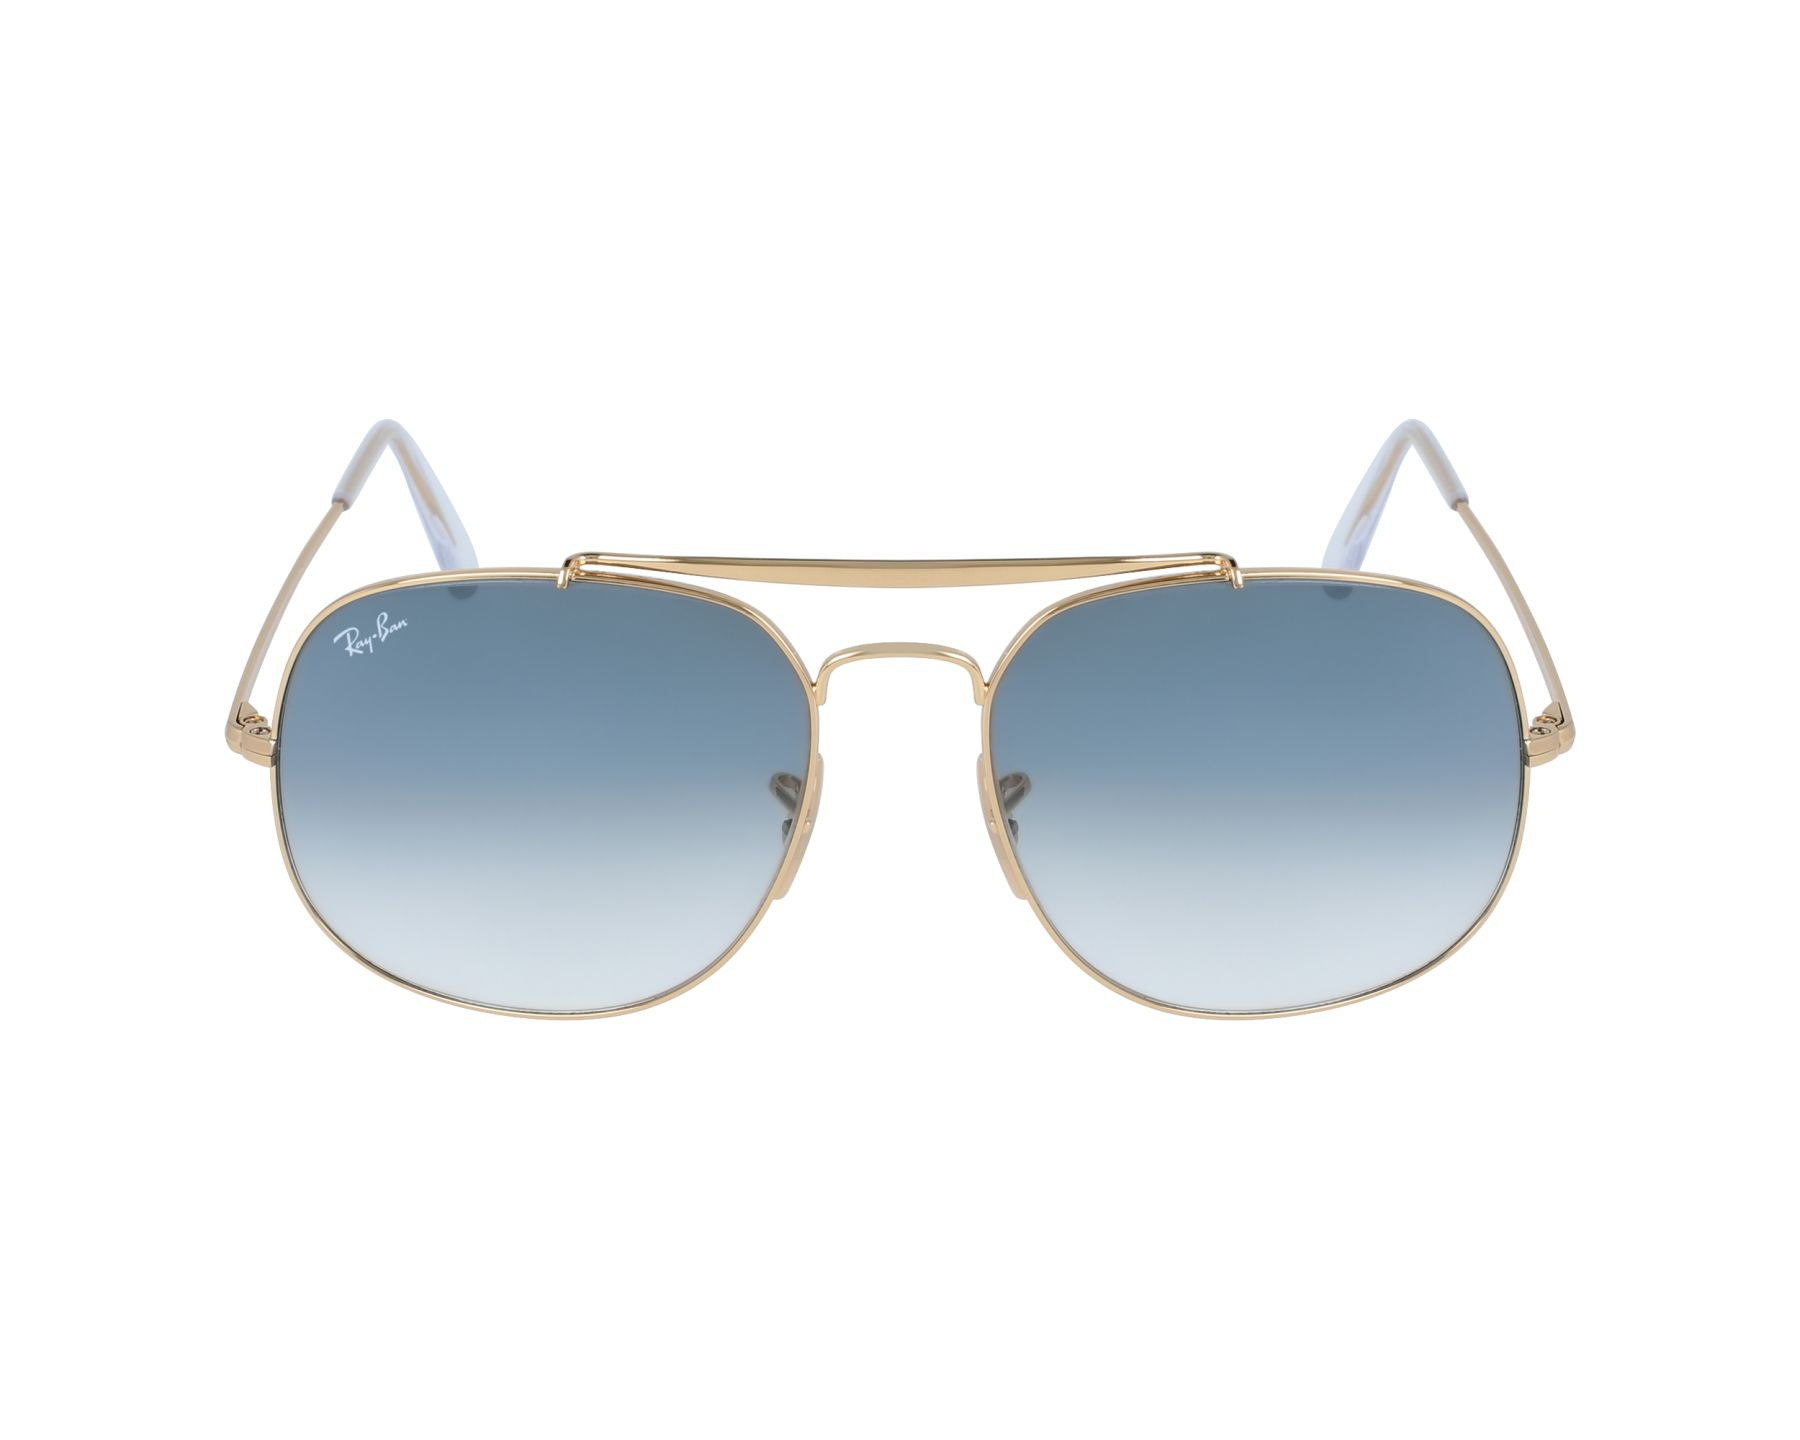 b7cdde0b8fe50 thumbnail Sunglasses Ray-Ban RB-3561 001 3F - Gold profile view